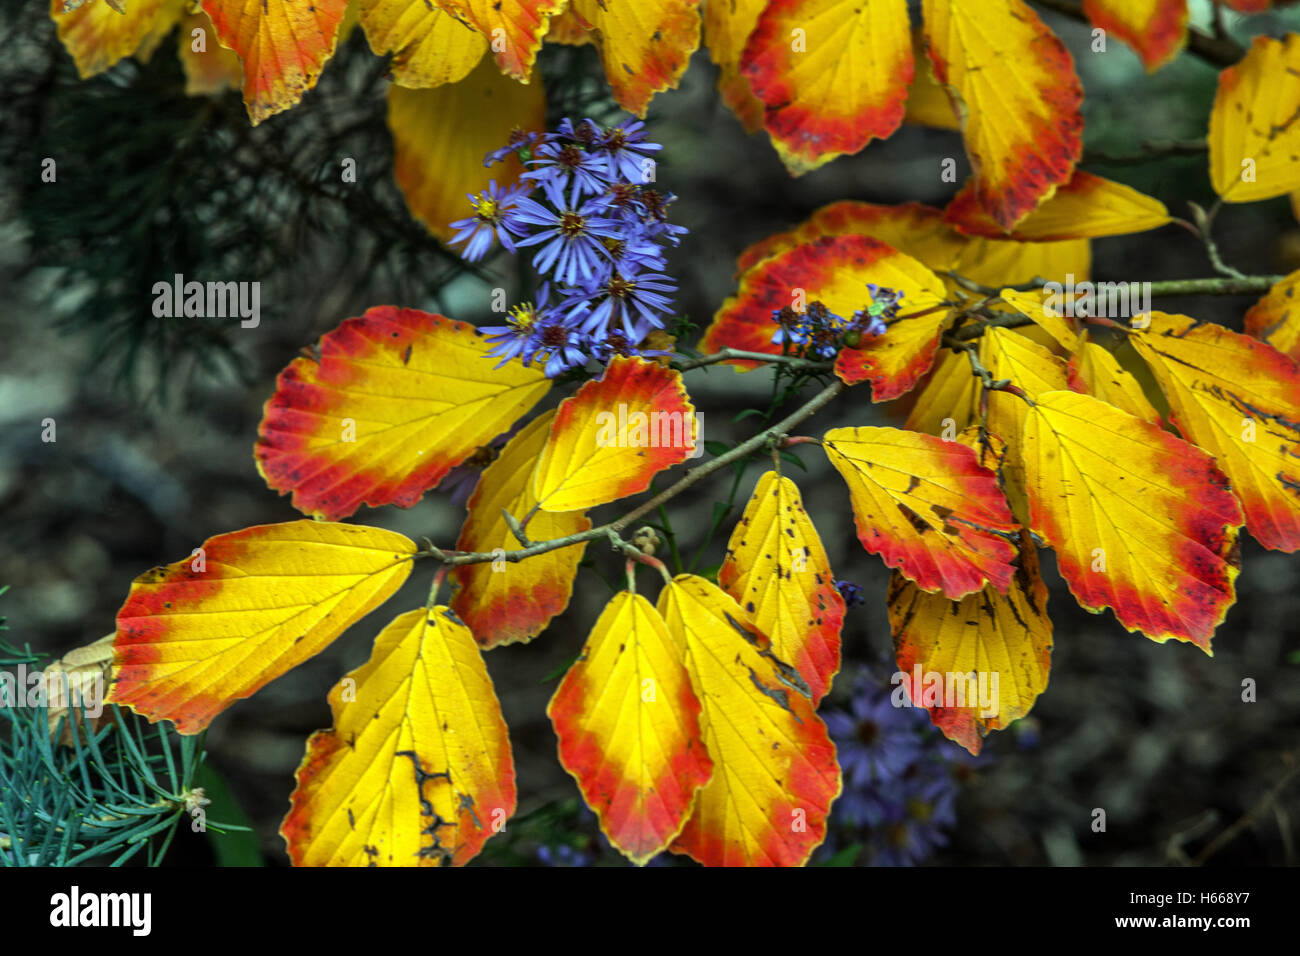 Witch-hazel, Hamamelis intermedia autumn color leaves Stock Photo, Royalty Free Image ...